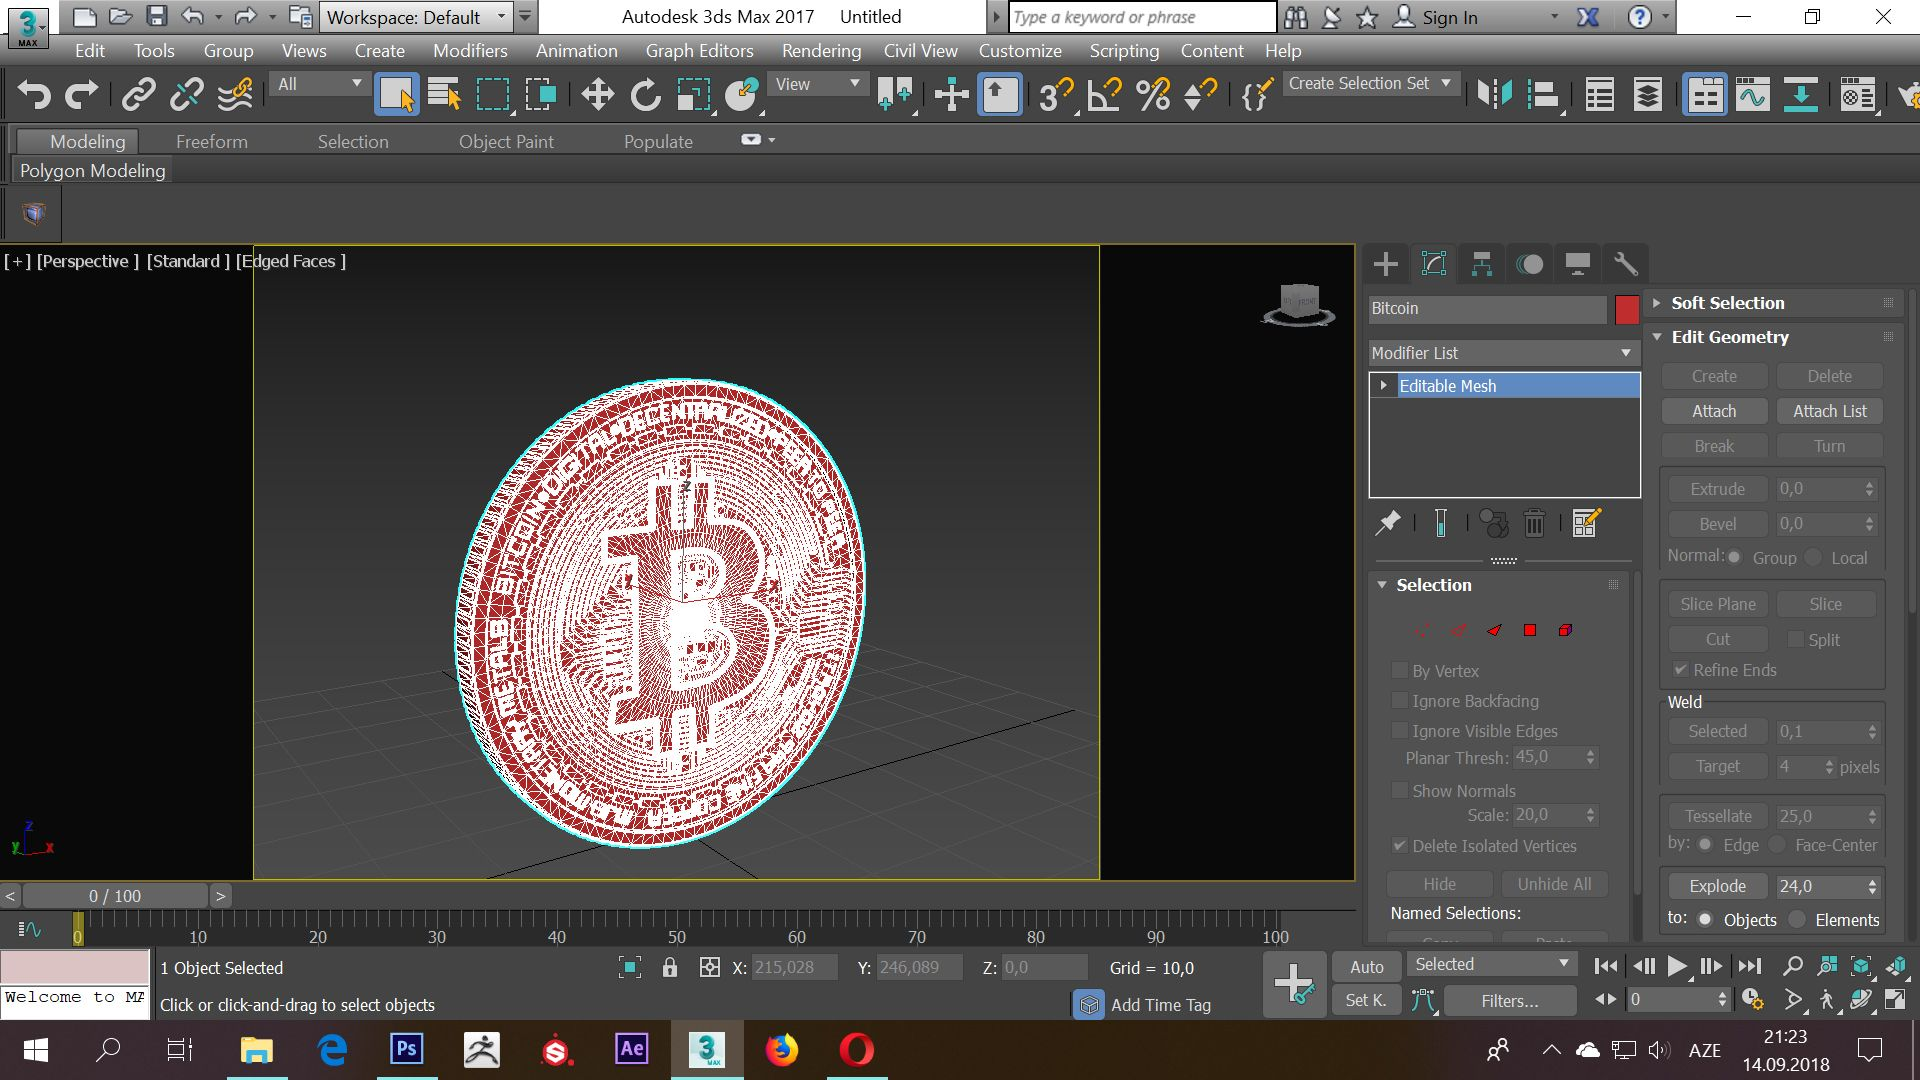 Buy 3ds Max 2017 With Bitcoin